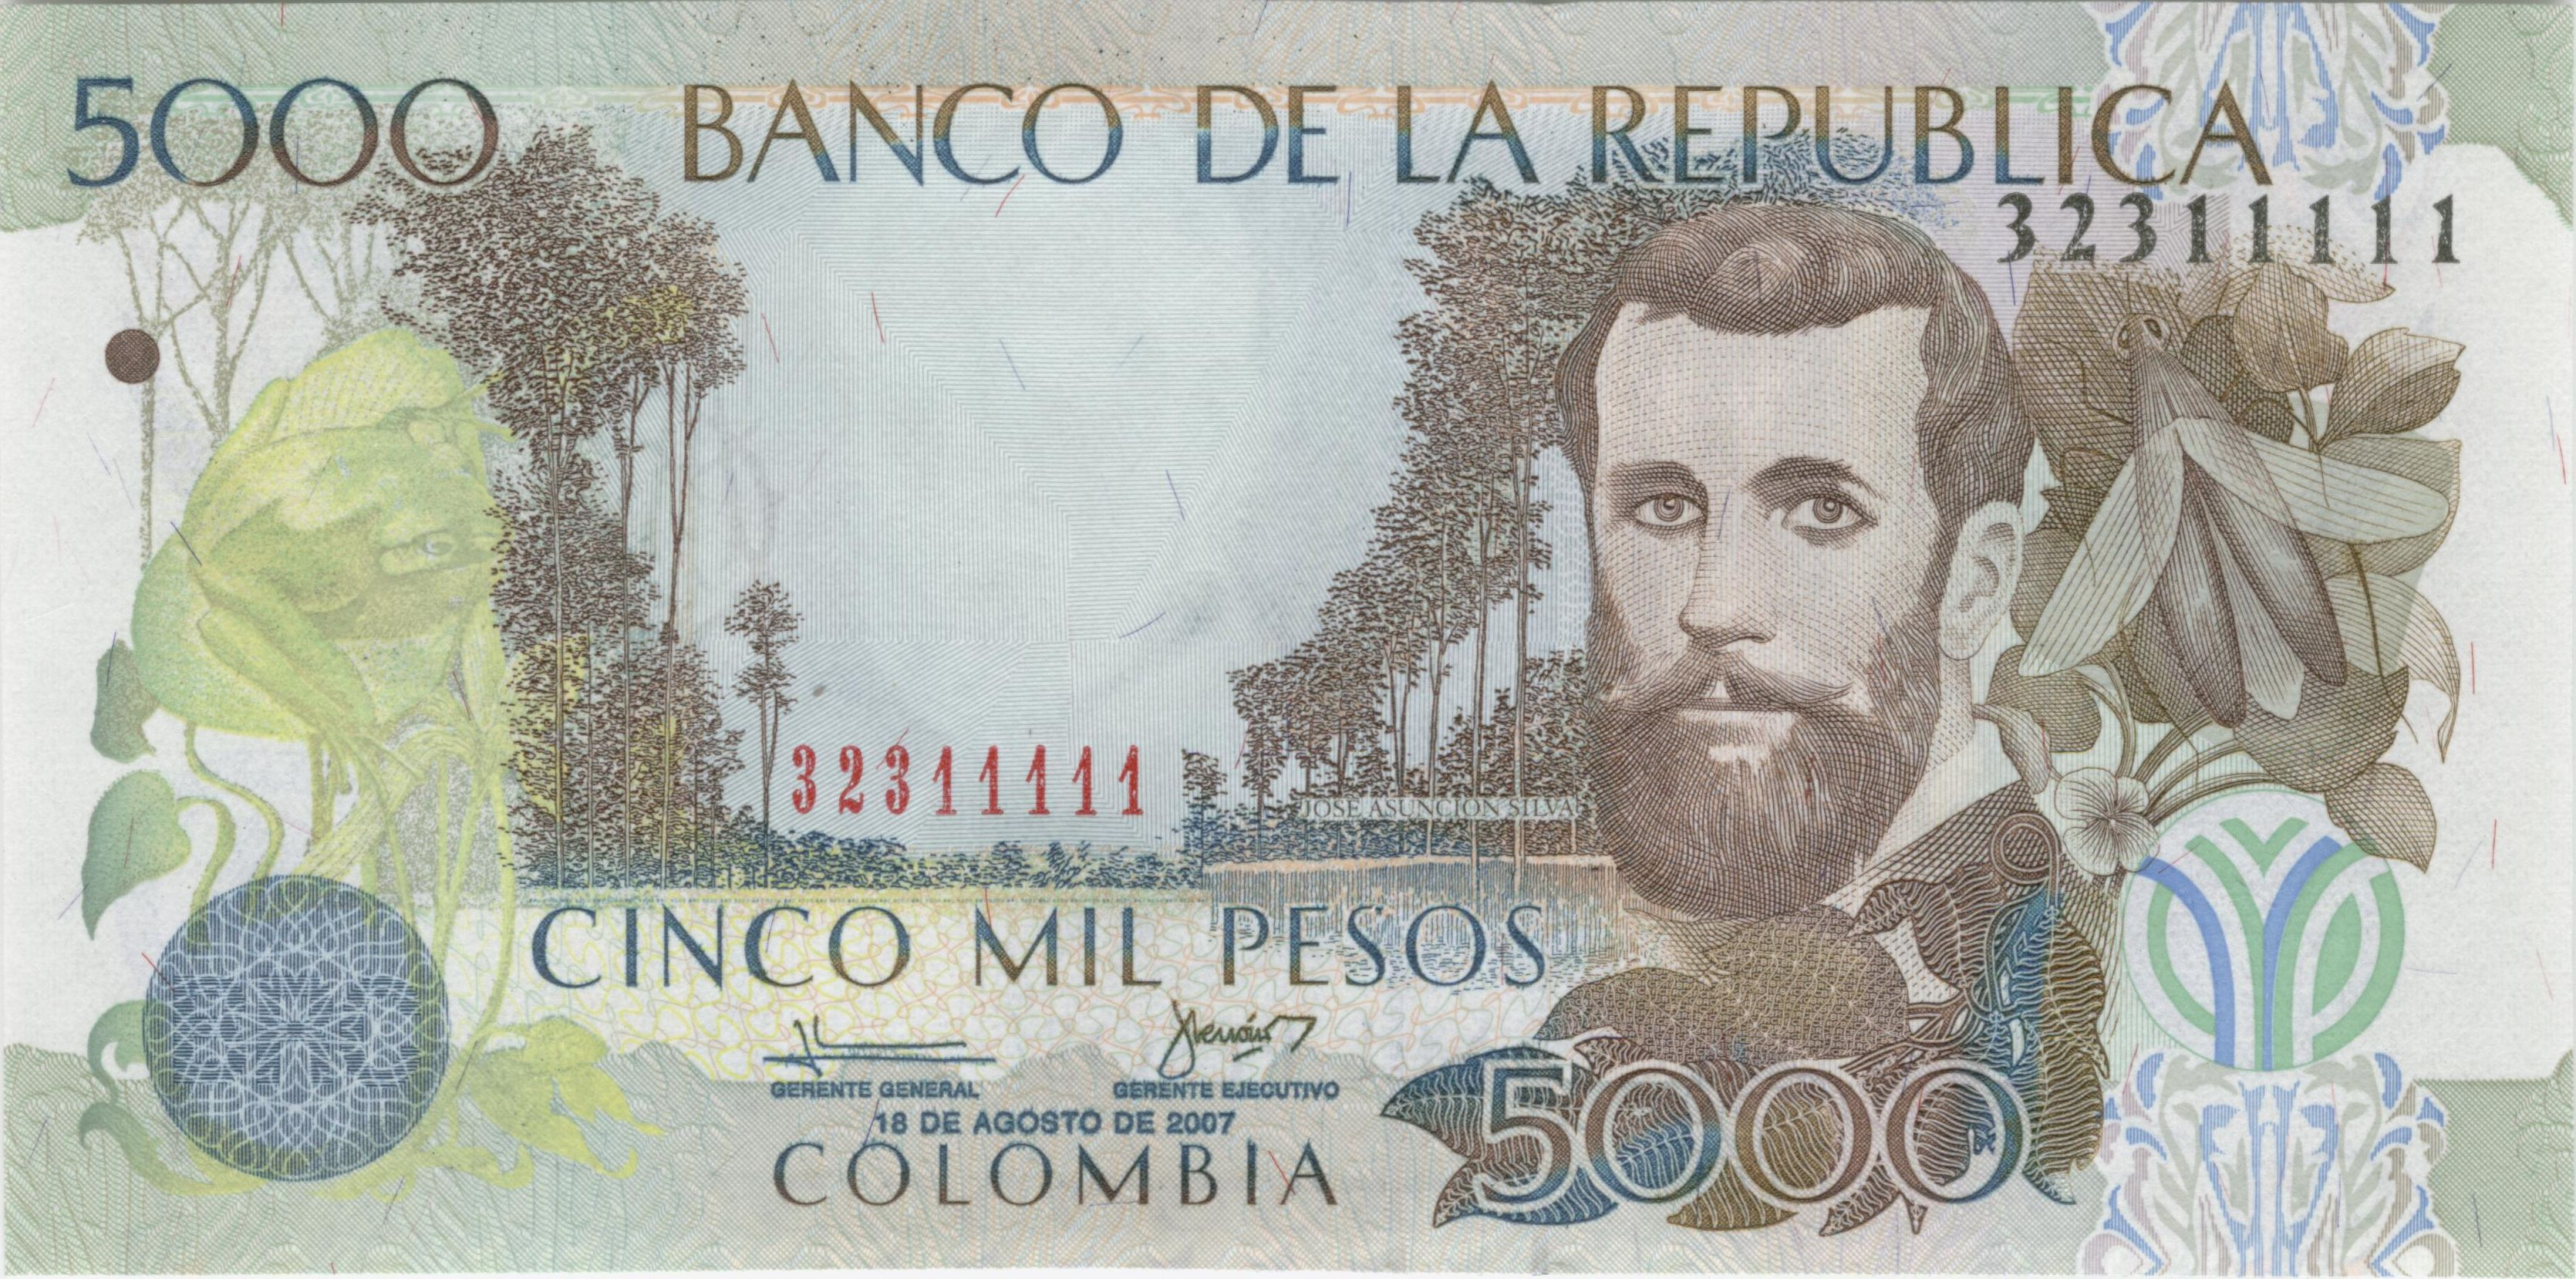 Silva on the 5,000 Pesos bill